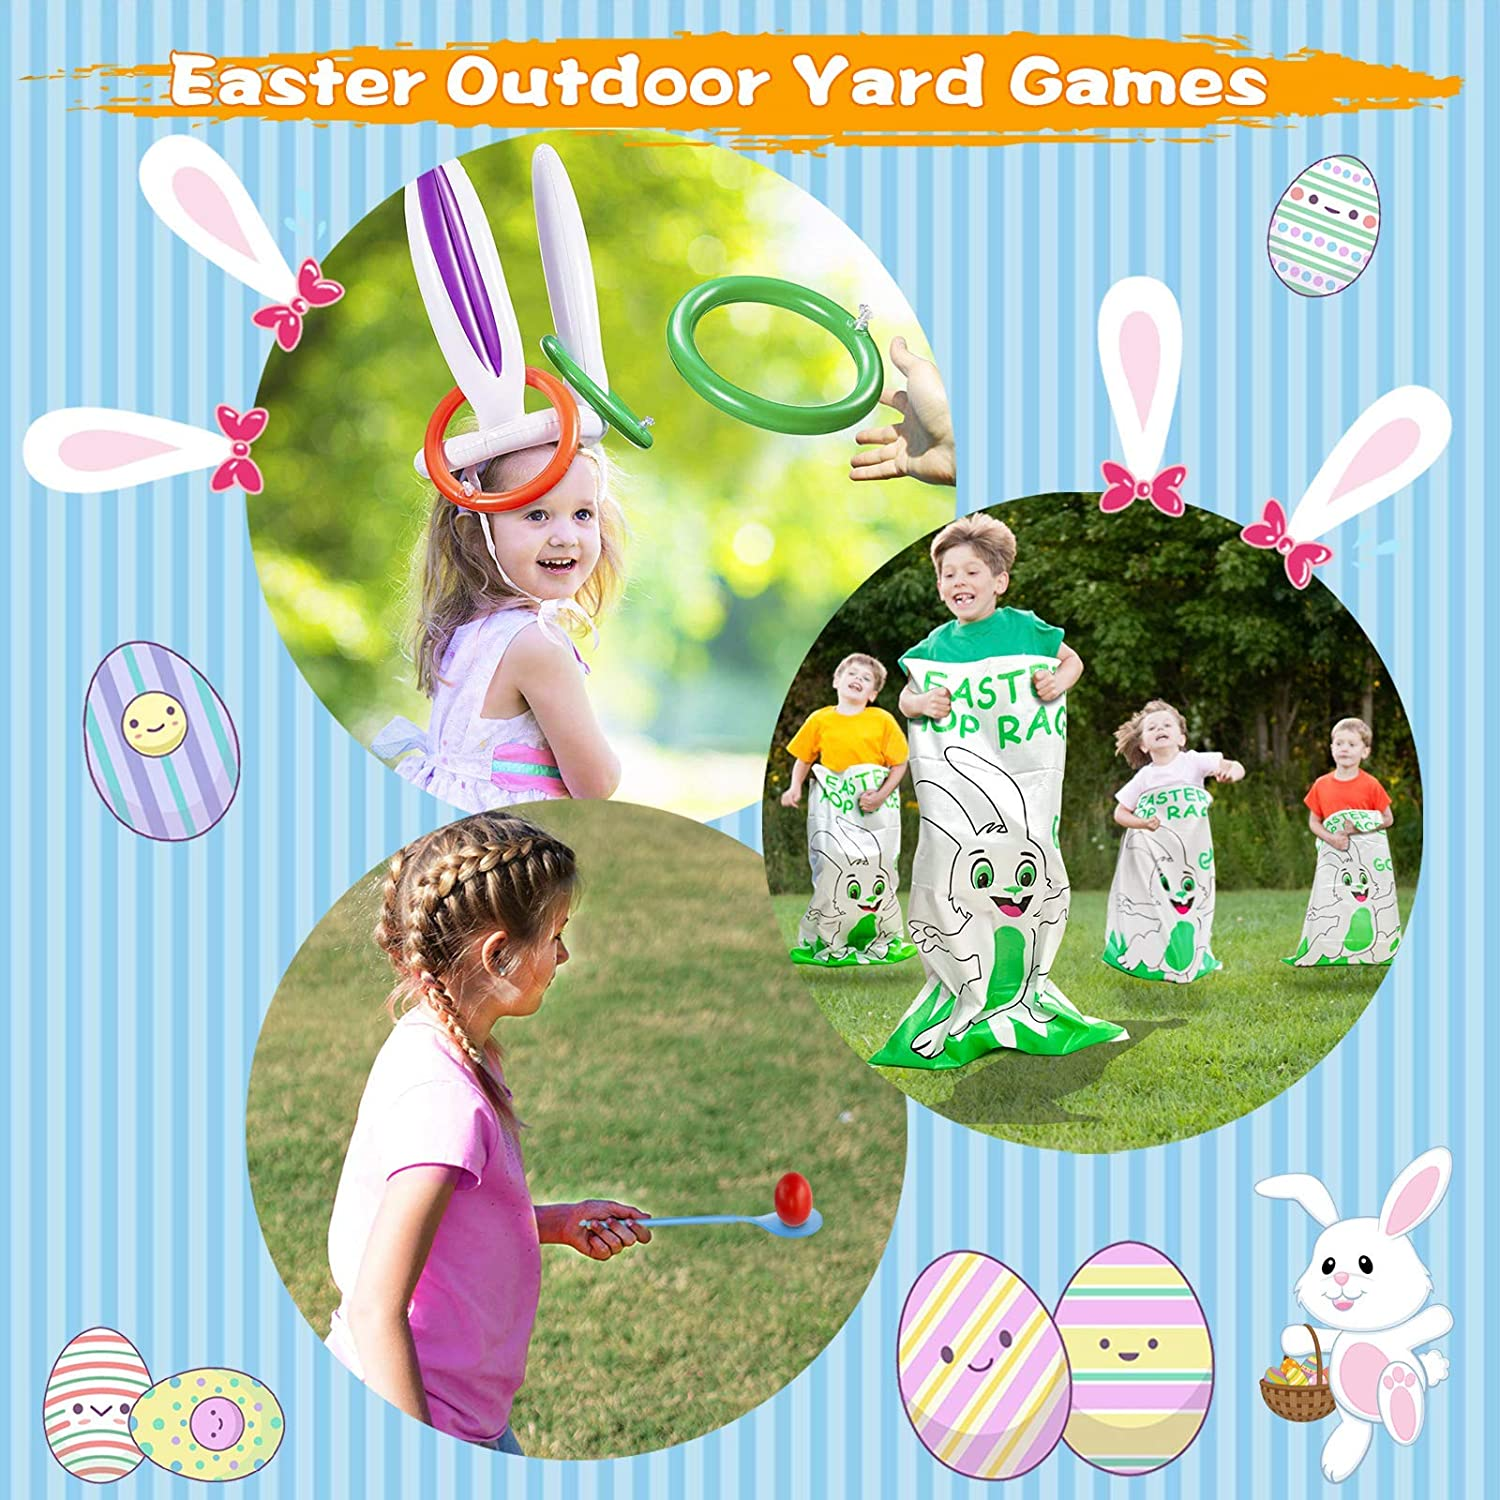 TURNMEON 11 Pack Easter Outdoor Party Games for Family, 4 Bunny Potato Sack Race Bags, 4 Egg and Spoon Race Game,2 Legged Relay Race Bands,1 Bunny Ears Ring Toss Game - Carnival Games Easter Eggs Hunt